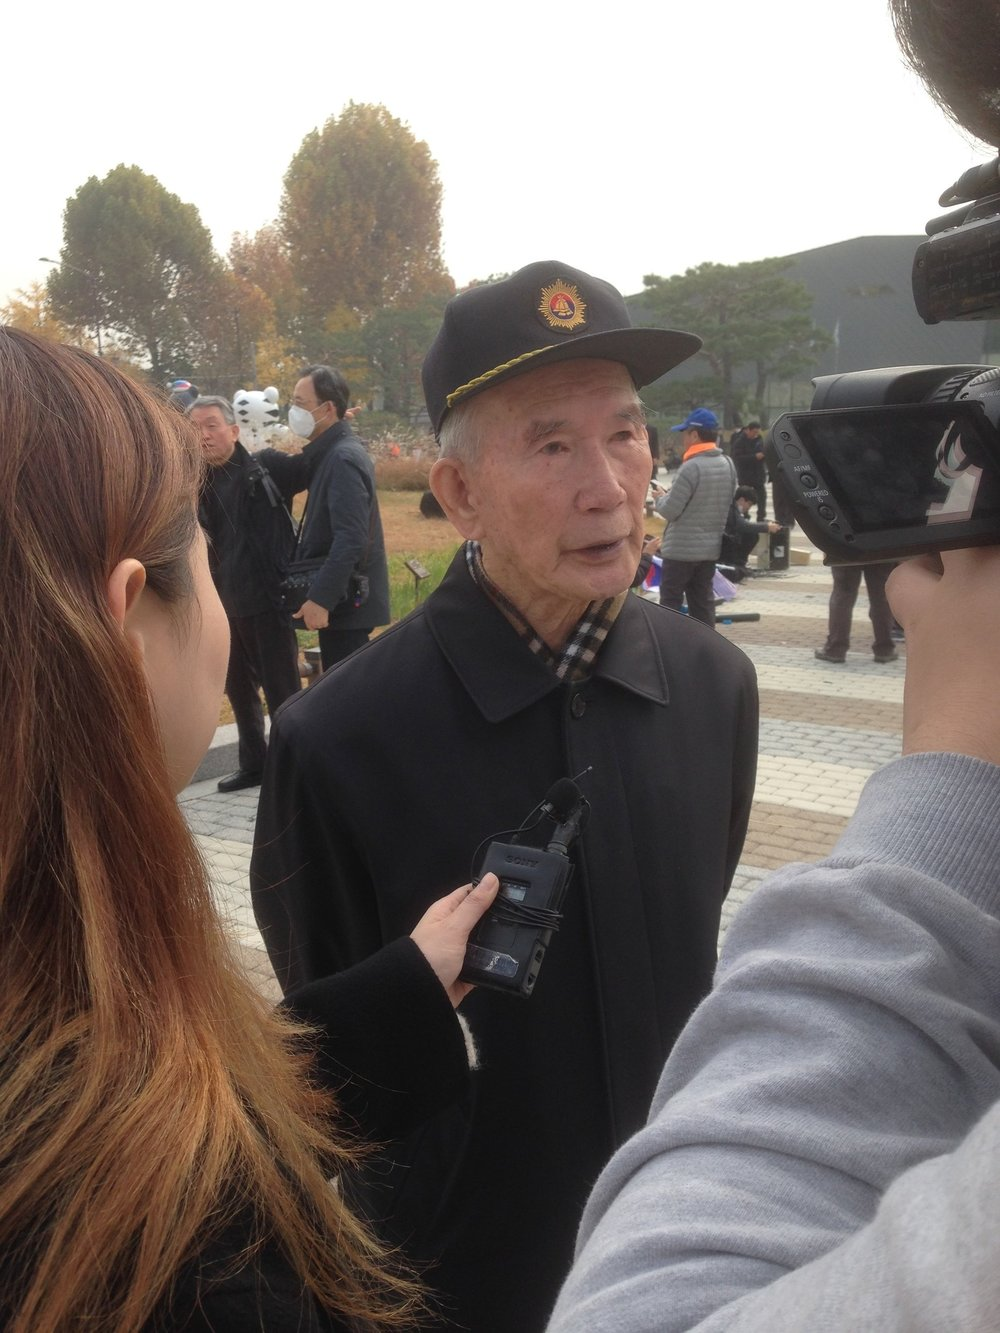 Name:  Yoo Young-bok, 89   Born:  11/30/1929   Nationality:  South Korean   NK invaded SK:  6/25/1950   Joined SK army:  August, 1952   Captured:  6/10/1953   Truce signed:  7/27/1953  Spent 47 years of hard labor in NK mines and escaped NK on 7/28/2000